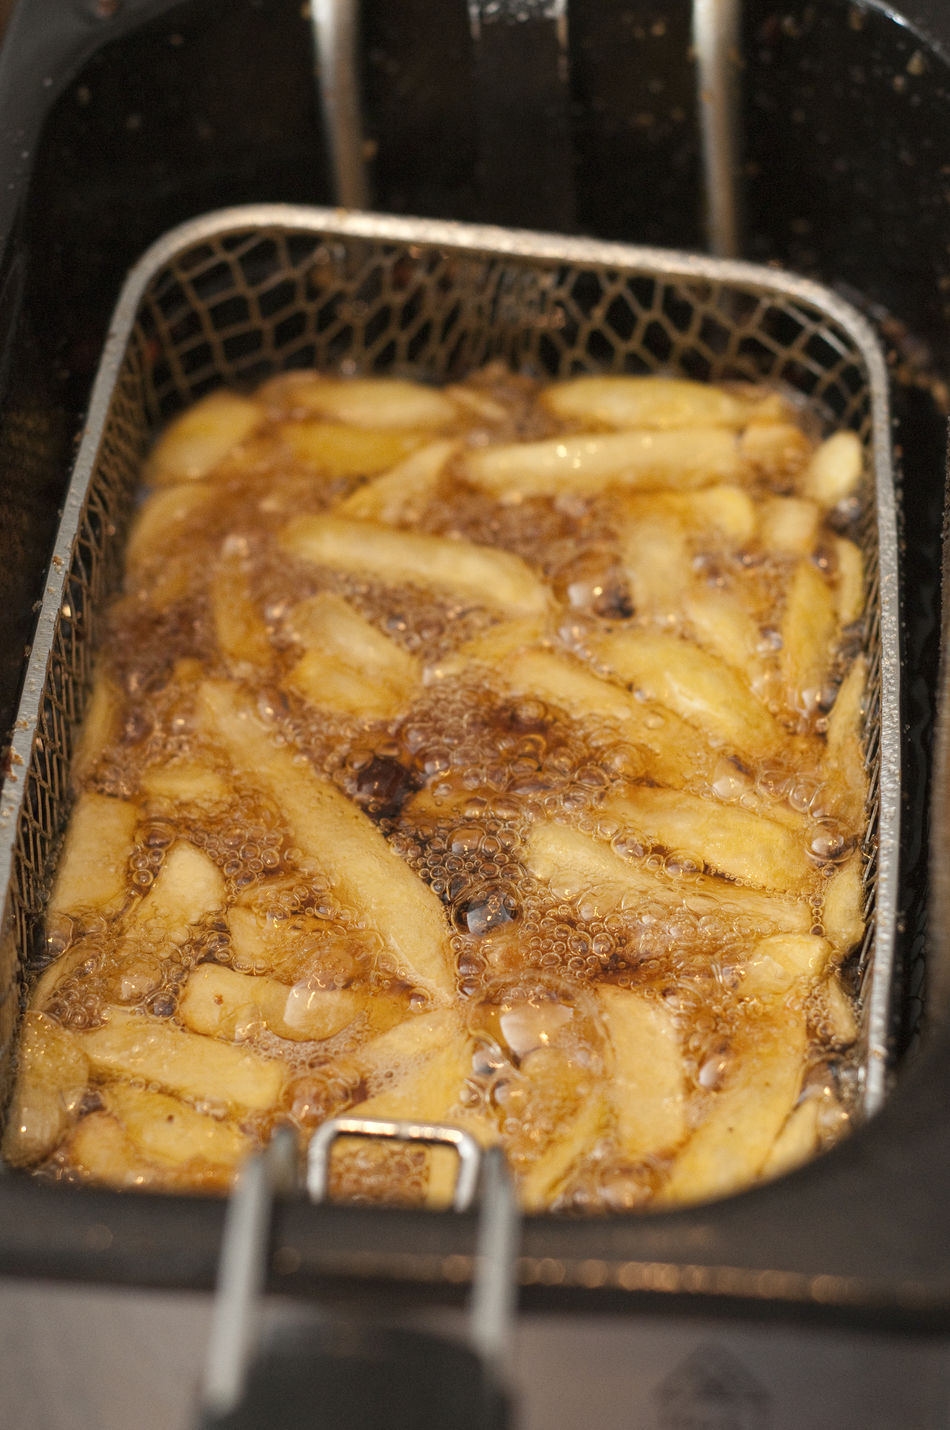 Baking Pan Chip Close-up Food Food And Drink Freshness Ftying Peppers Indoors  Preparation  Ready-to-eat